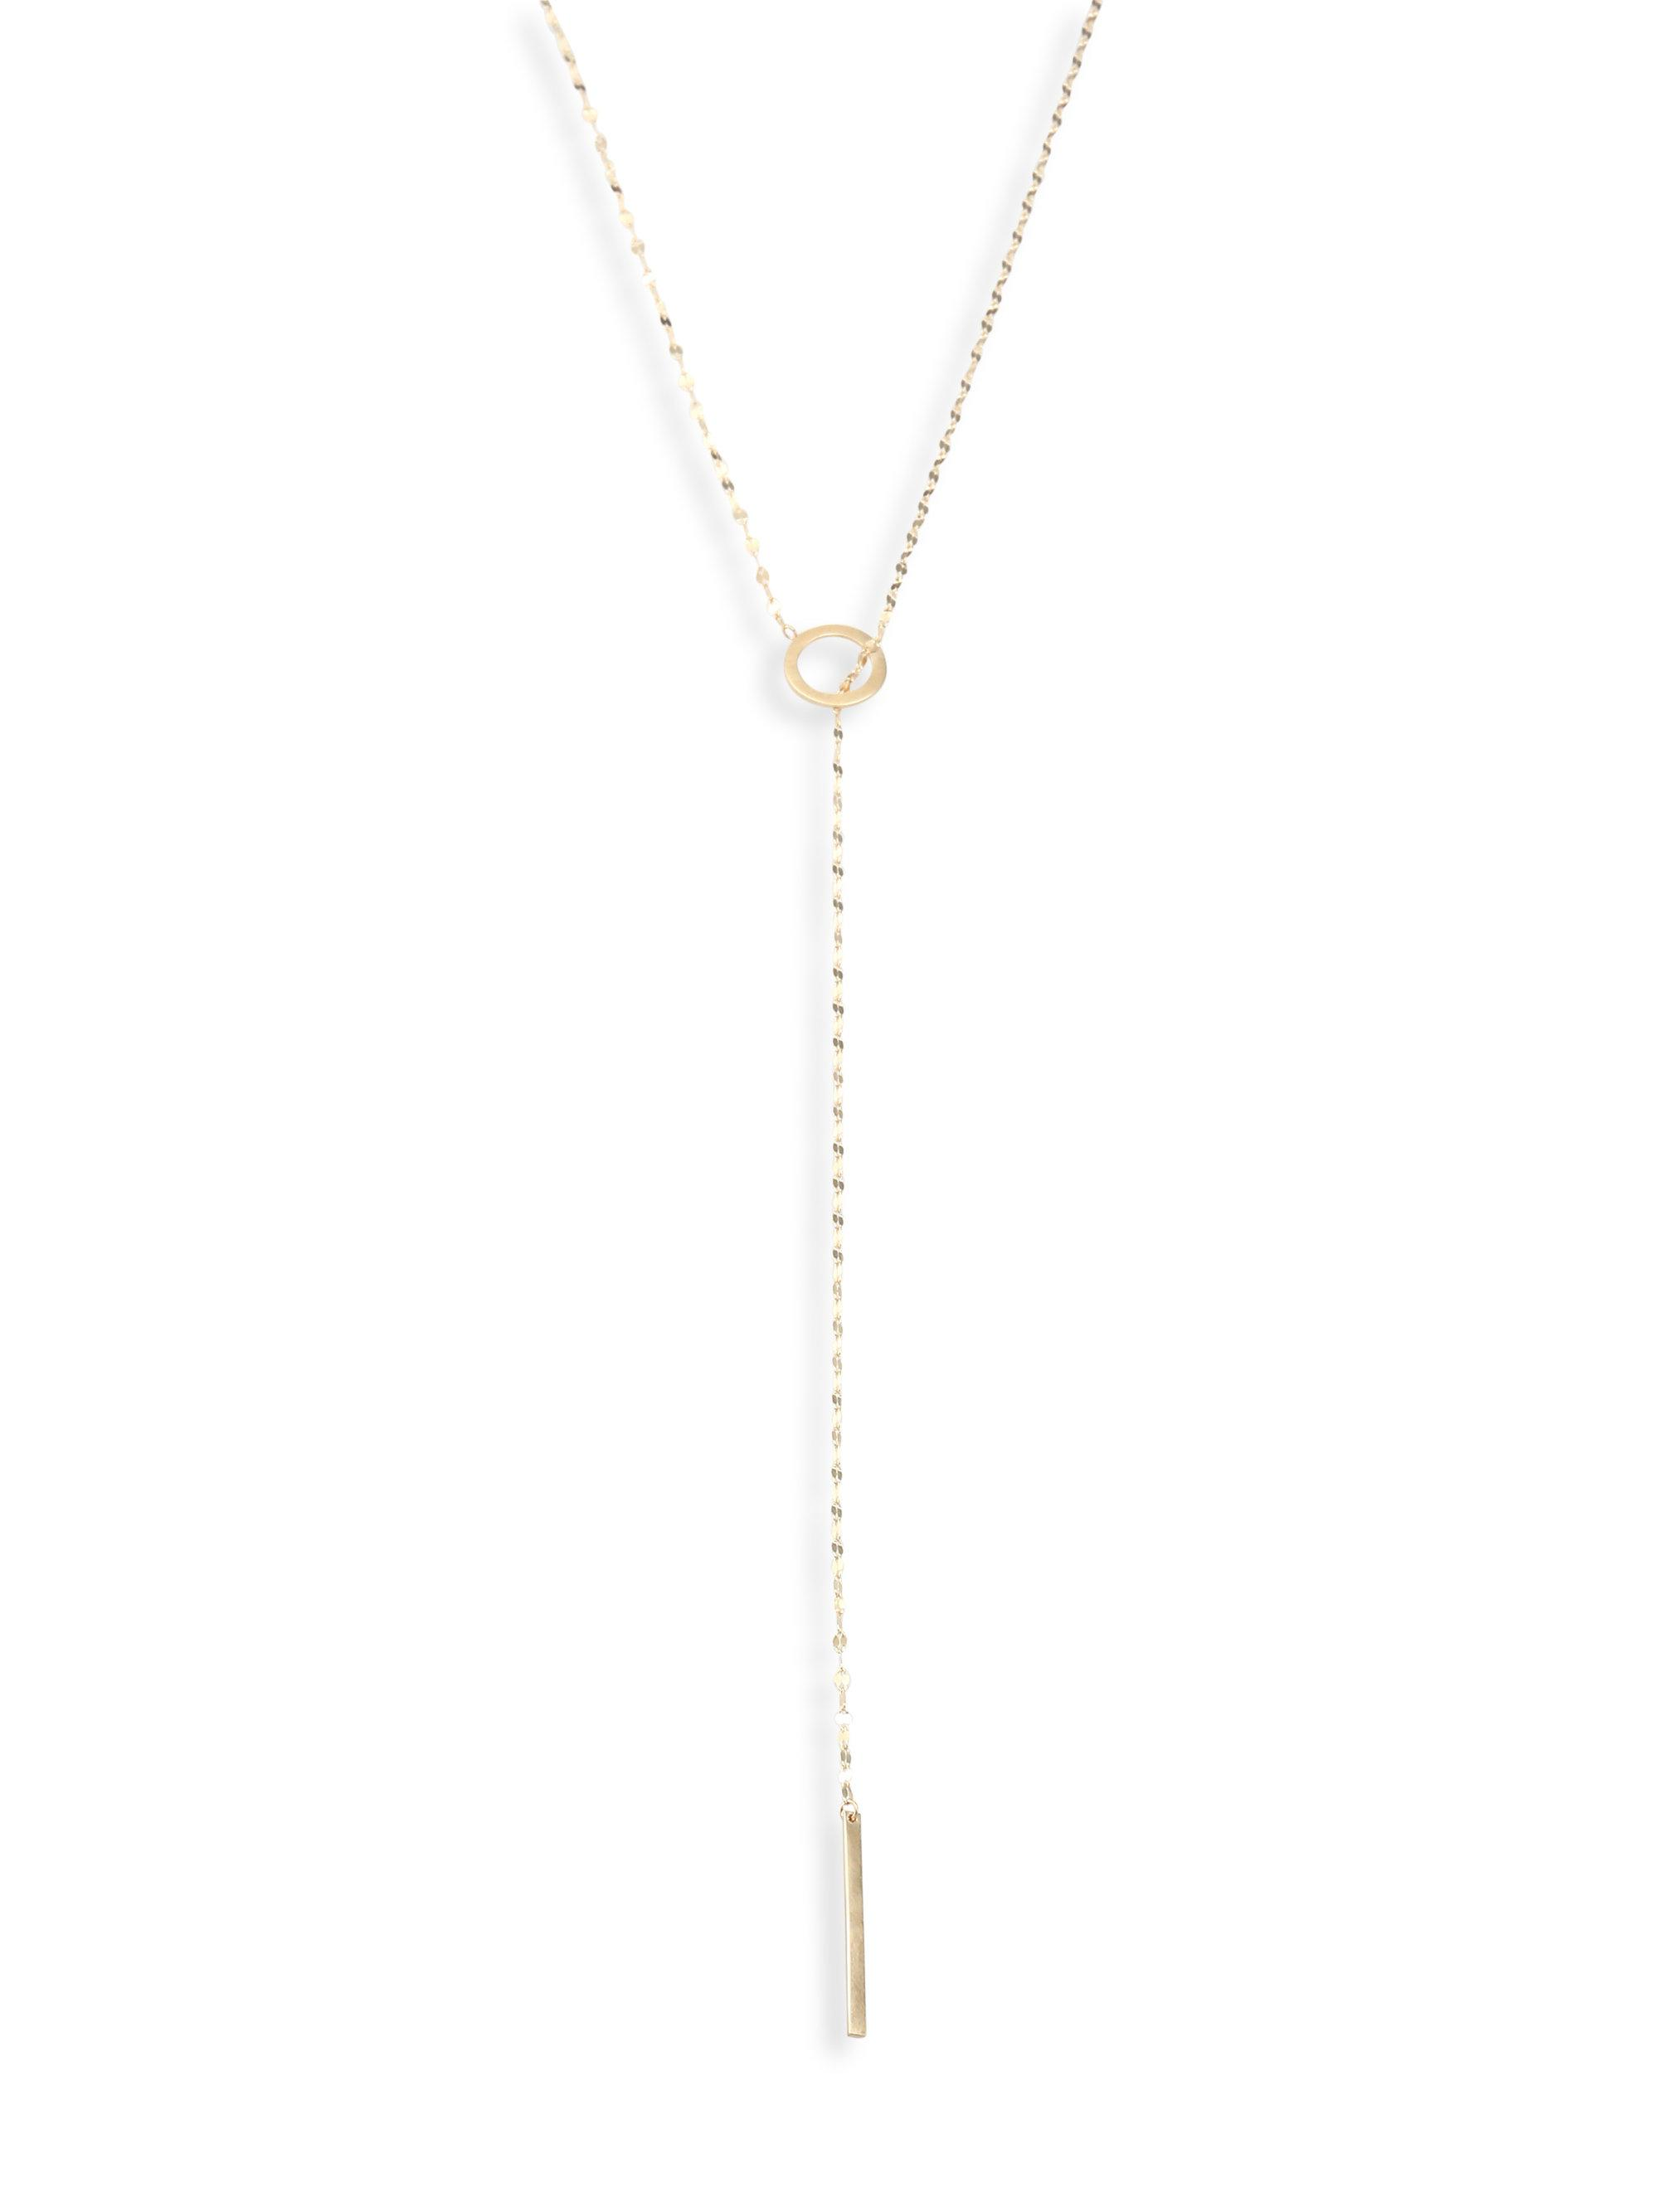 Lana Jewelry Bond 14K Long Link Necklace, 36